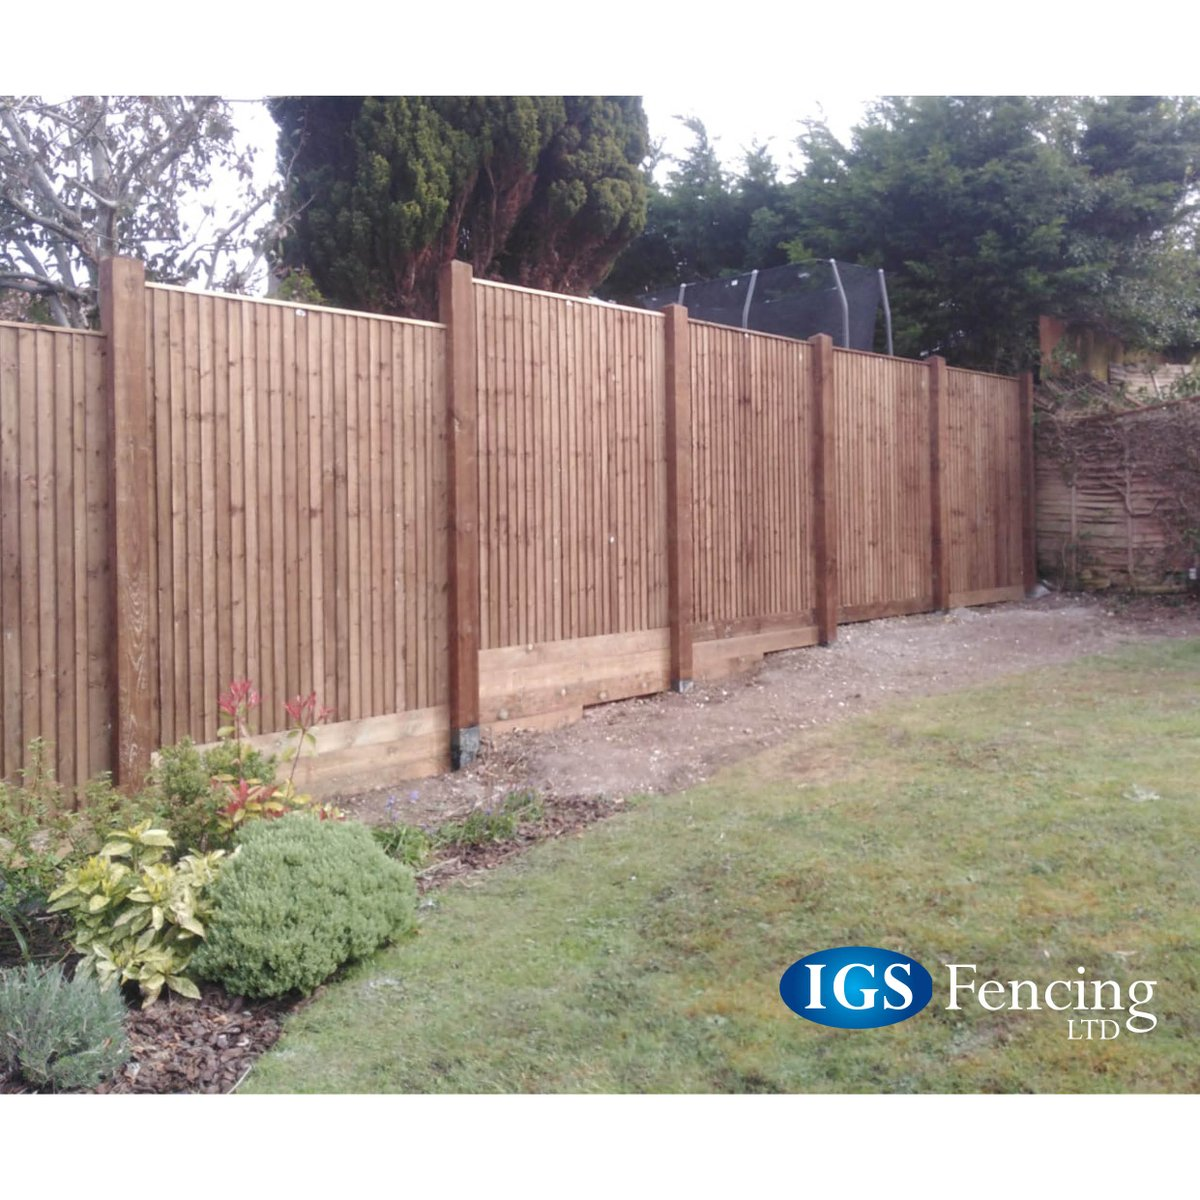 Looking to improve the #exterior of your #home this #Summer? Look at this recently installed #closeboard #fencing that the #team has completed. To find out more see our website http://www.igsfencing.co.uk   sales@igsfencing.co.uk   02392 464470.pic.twitter.com/xxvy2bFeyo